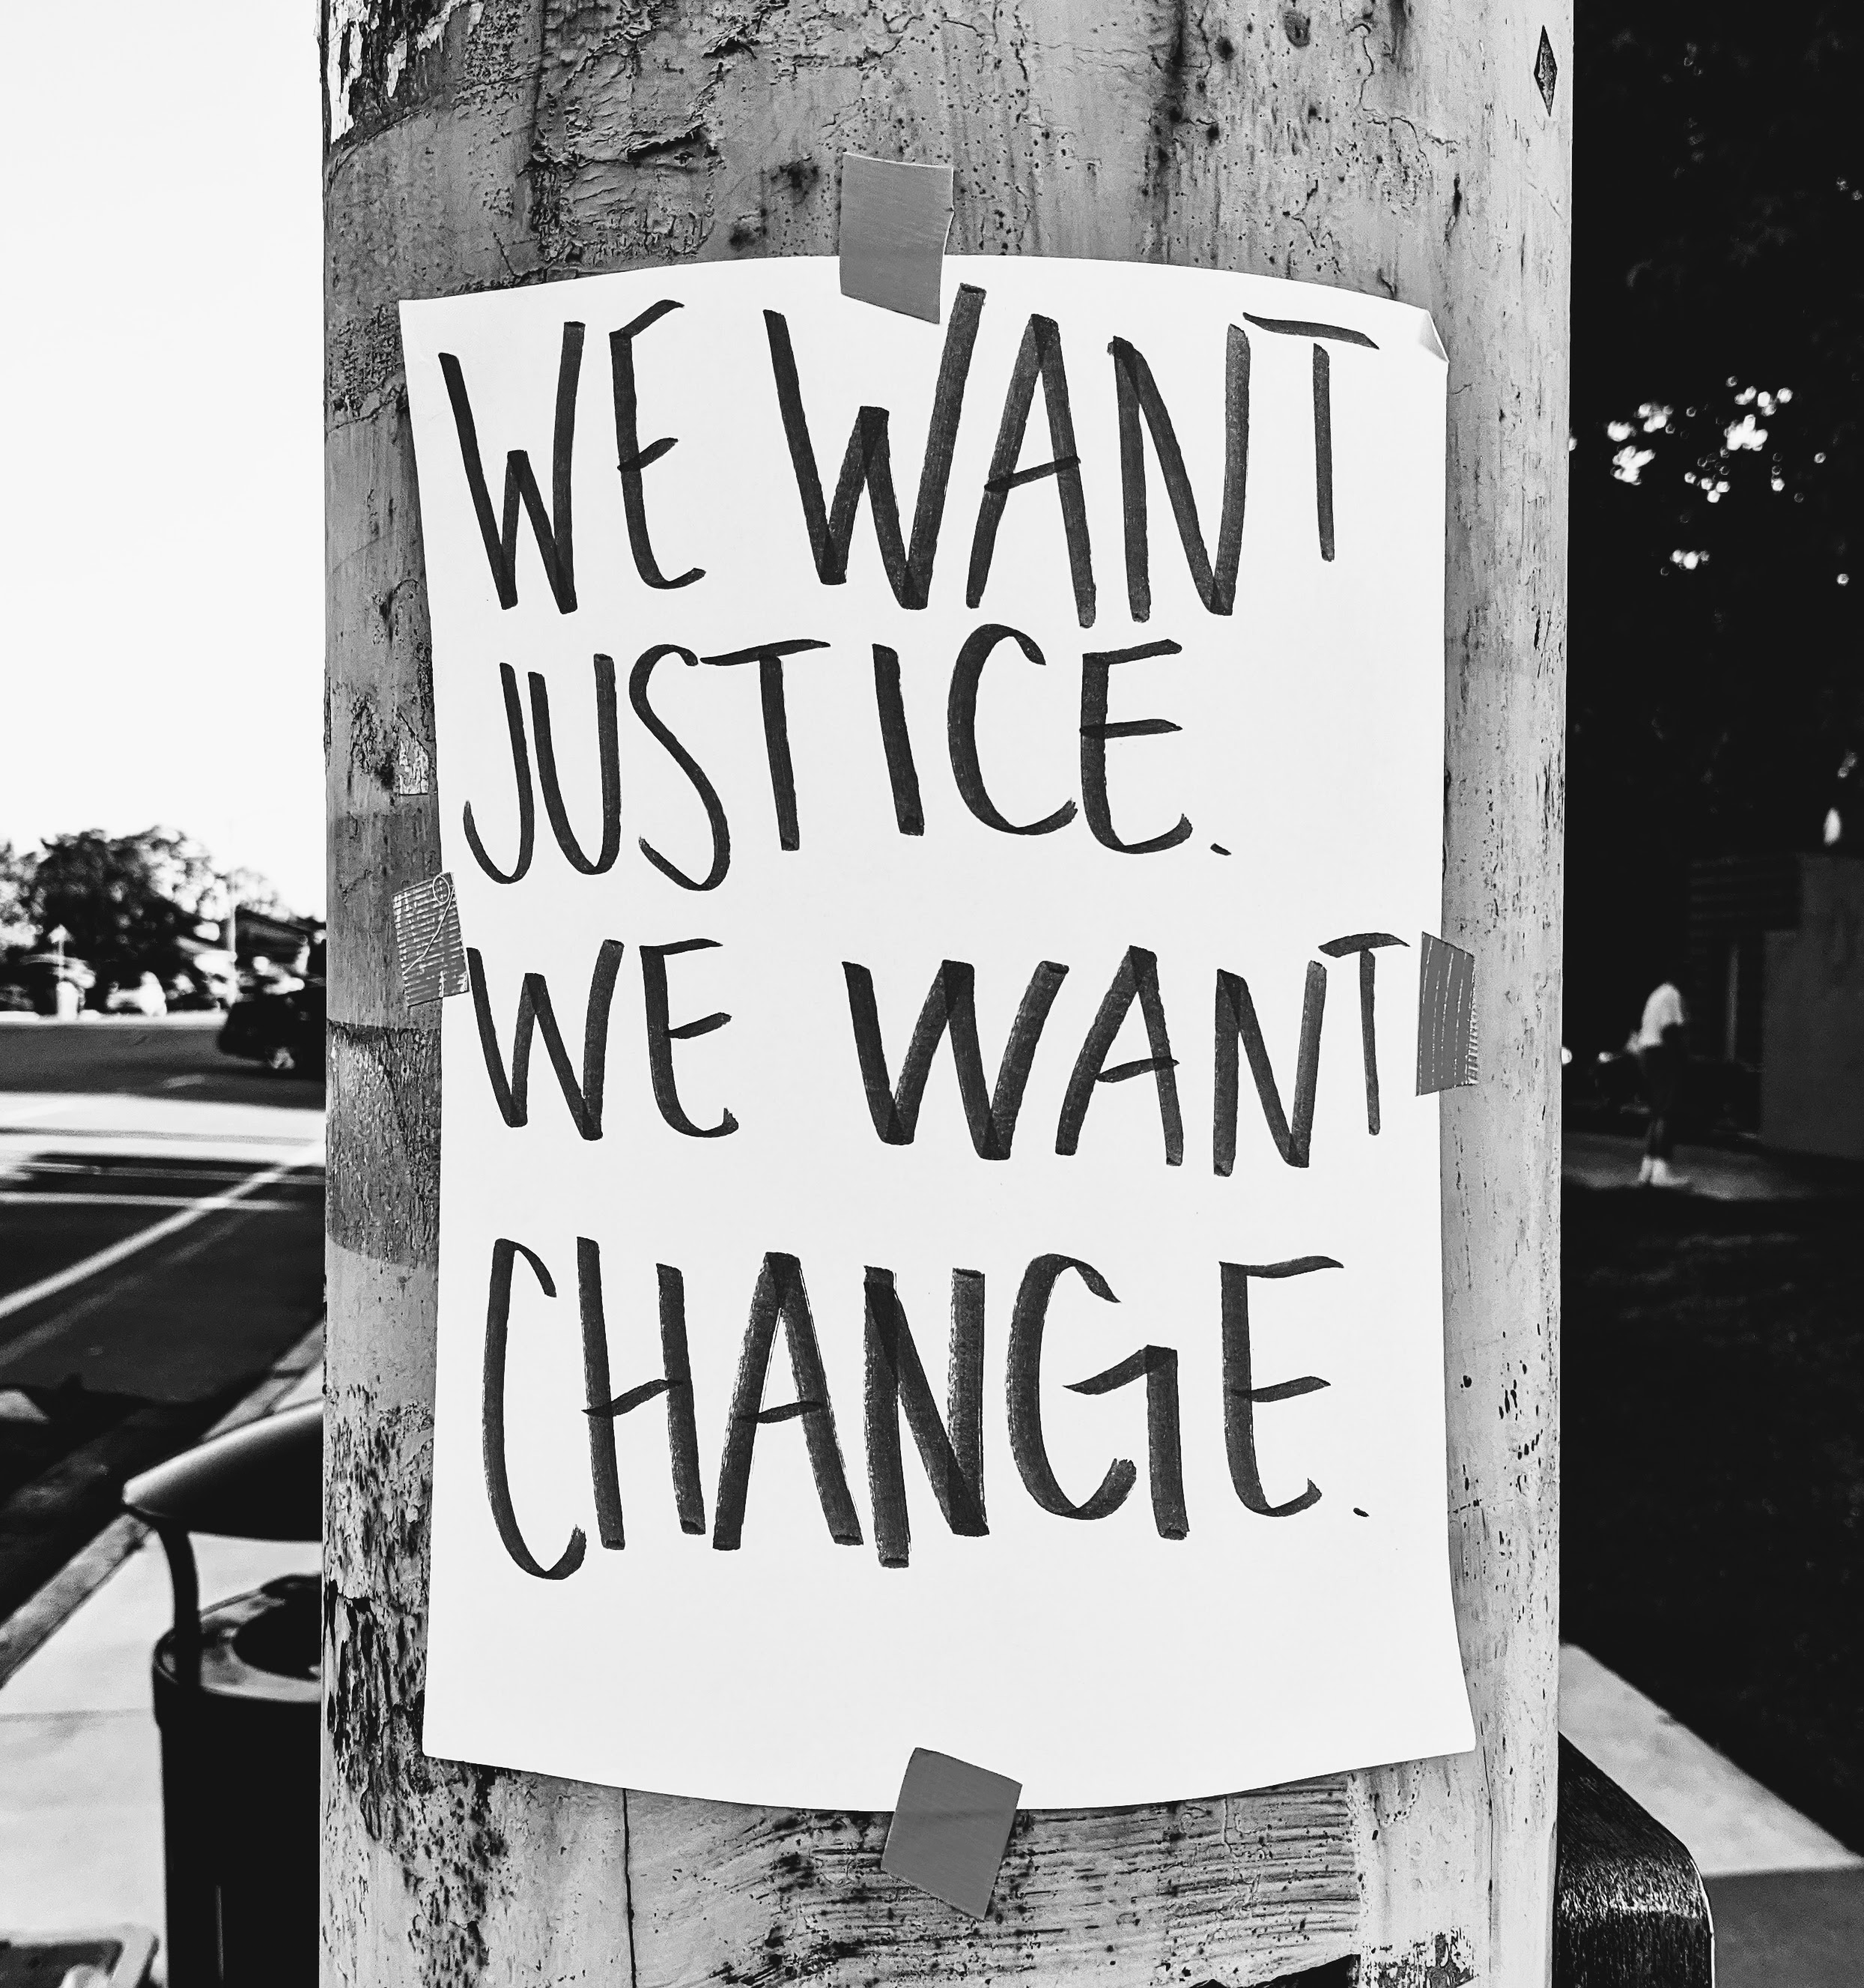 File:We Want Justice We Want Change (49970698301).jpg - Wikimedia Commons